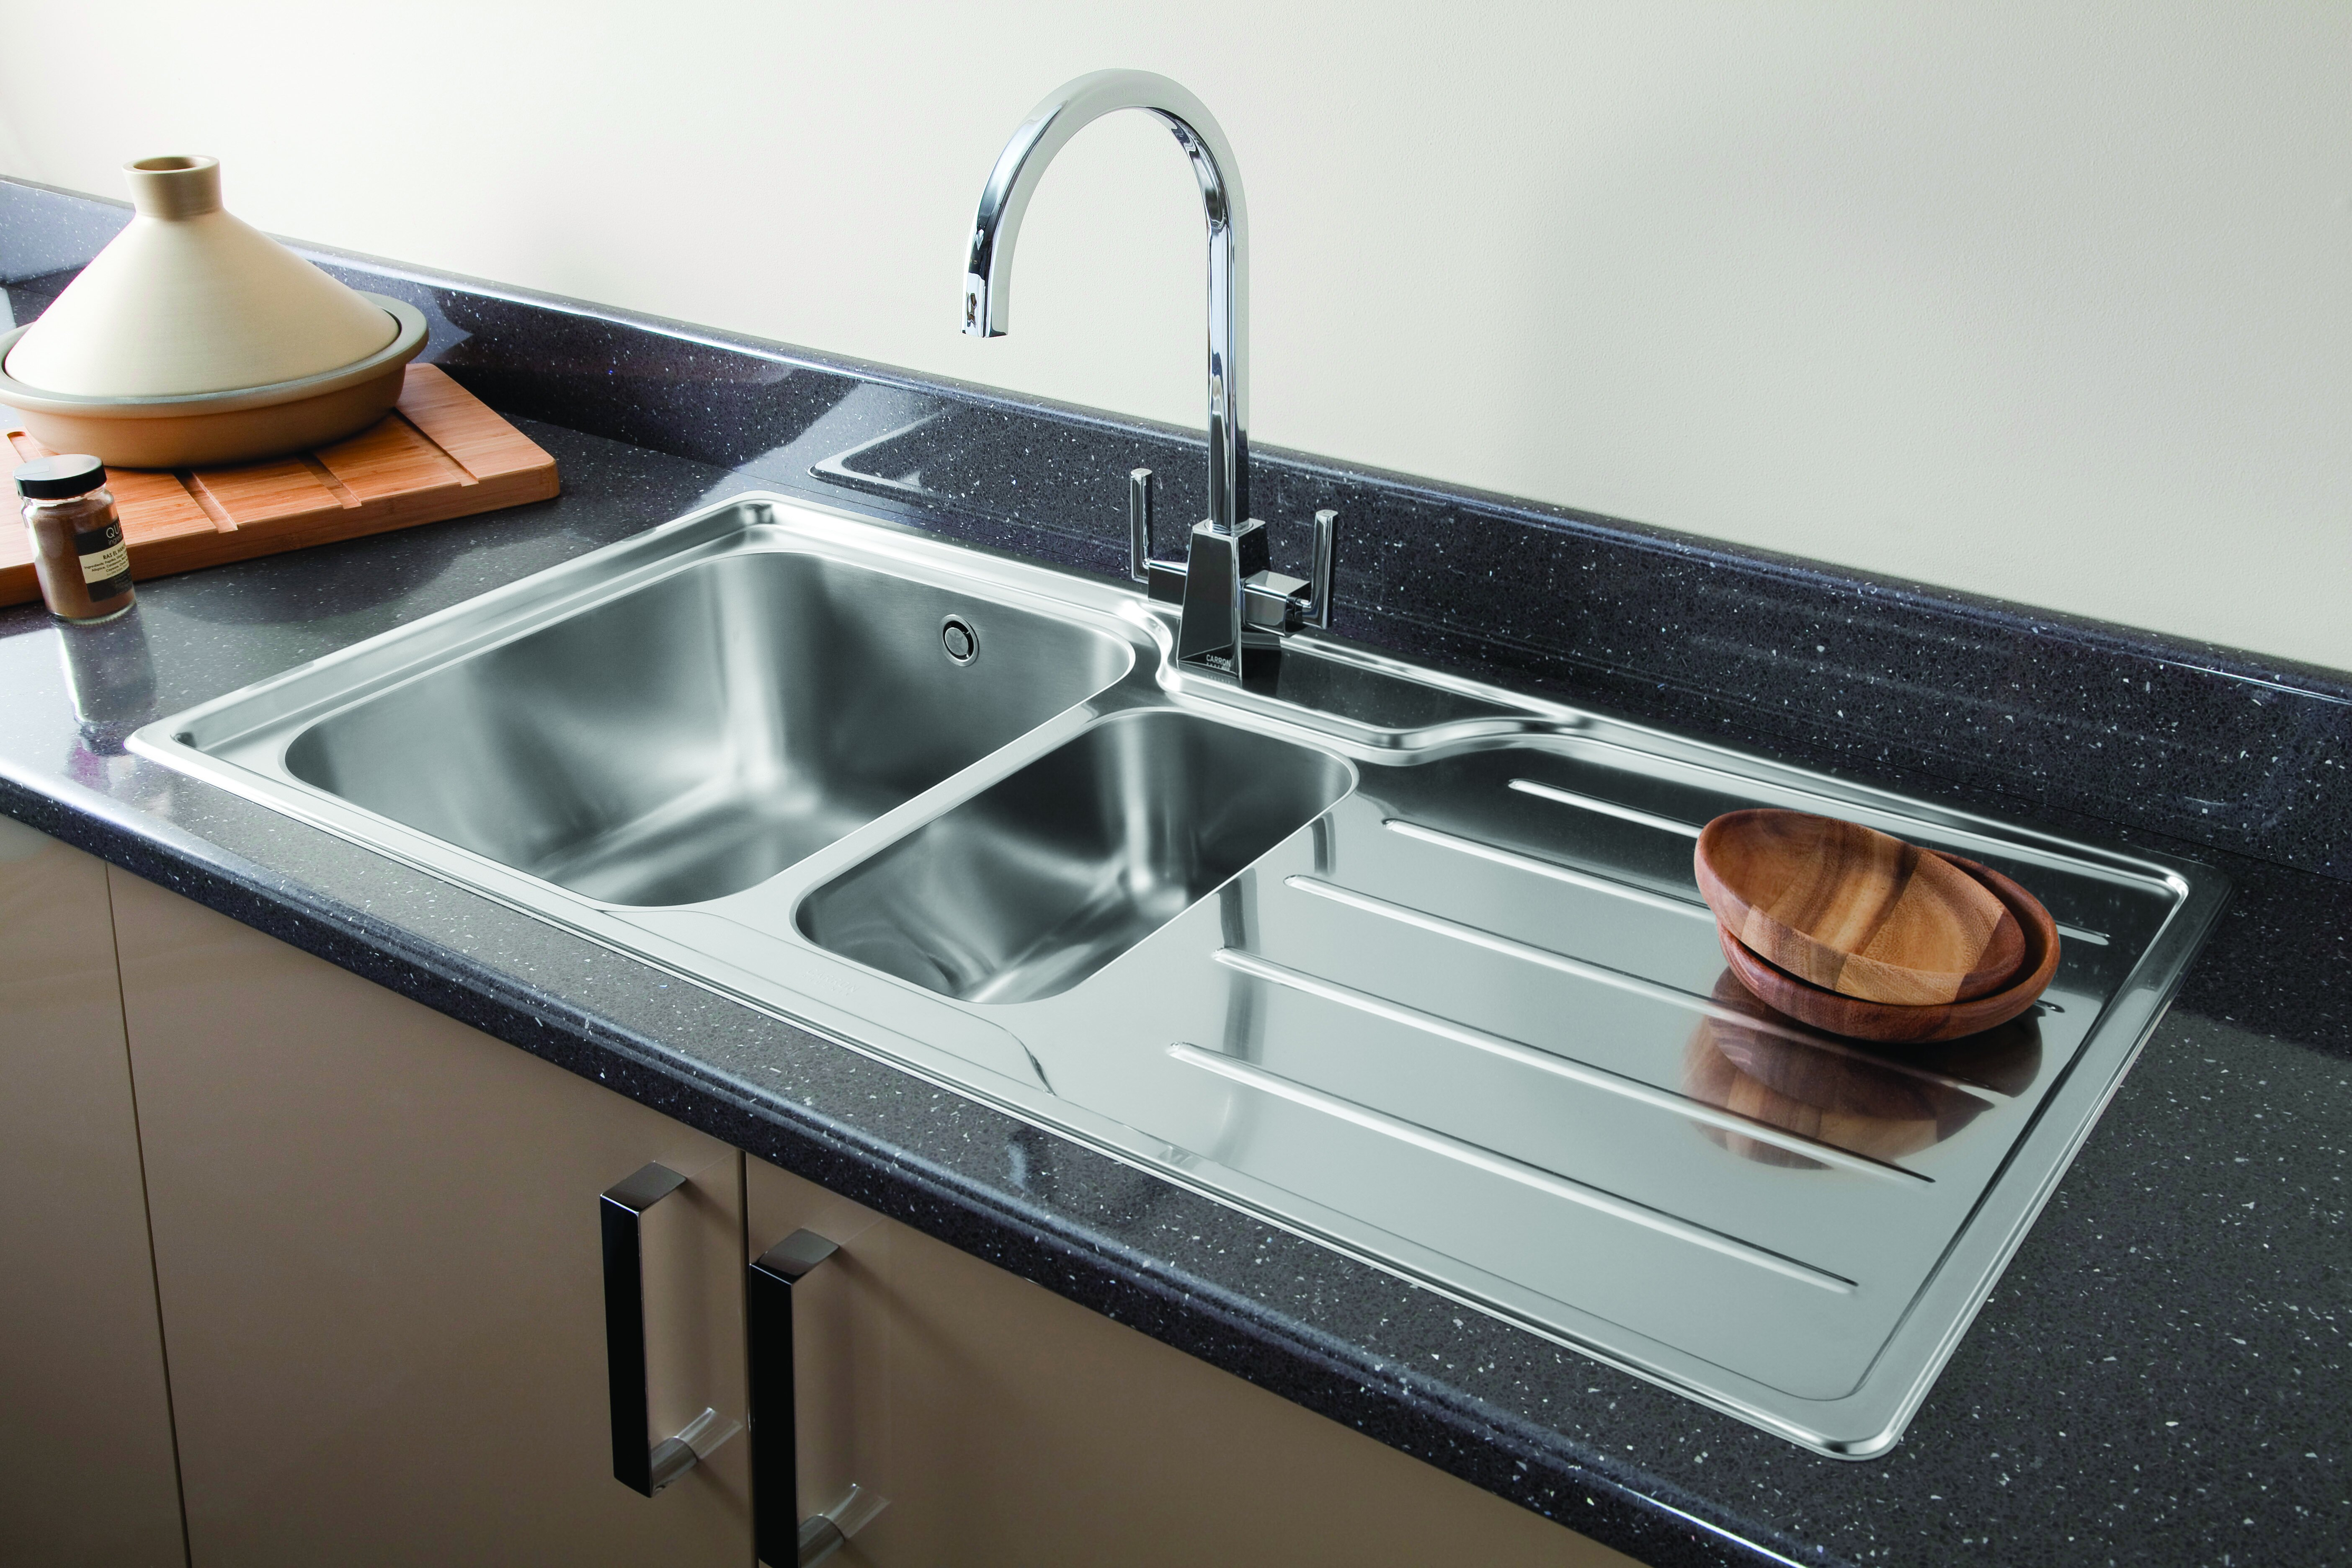 Kitchen Sink Stainless Steel Undermount | Kitchen Double Sinks Stainless Steel | Kitchen Sinks Stainless Steel